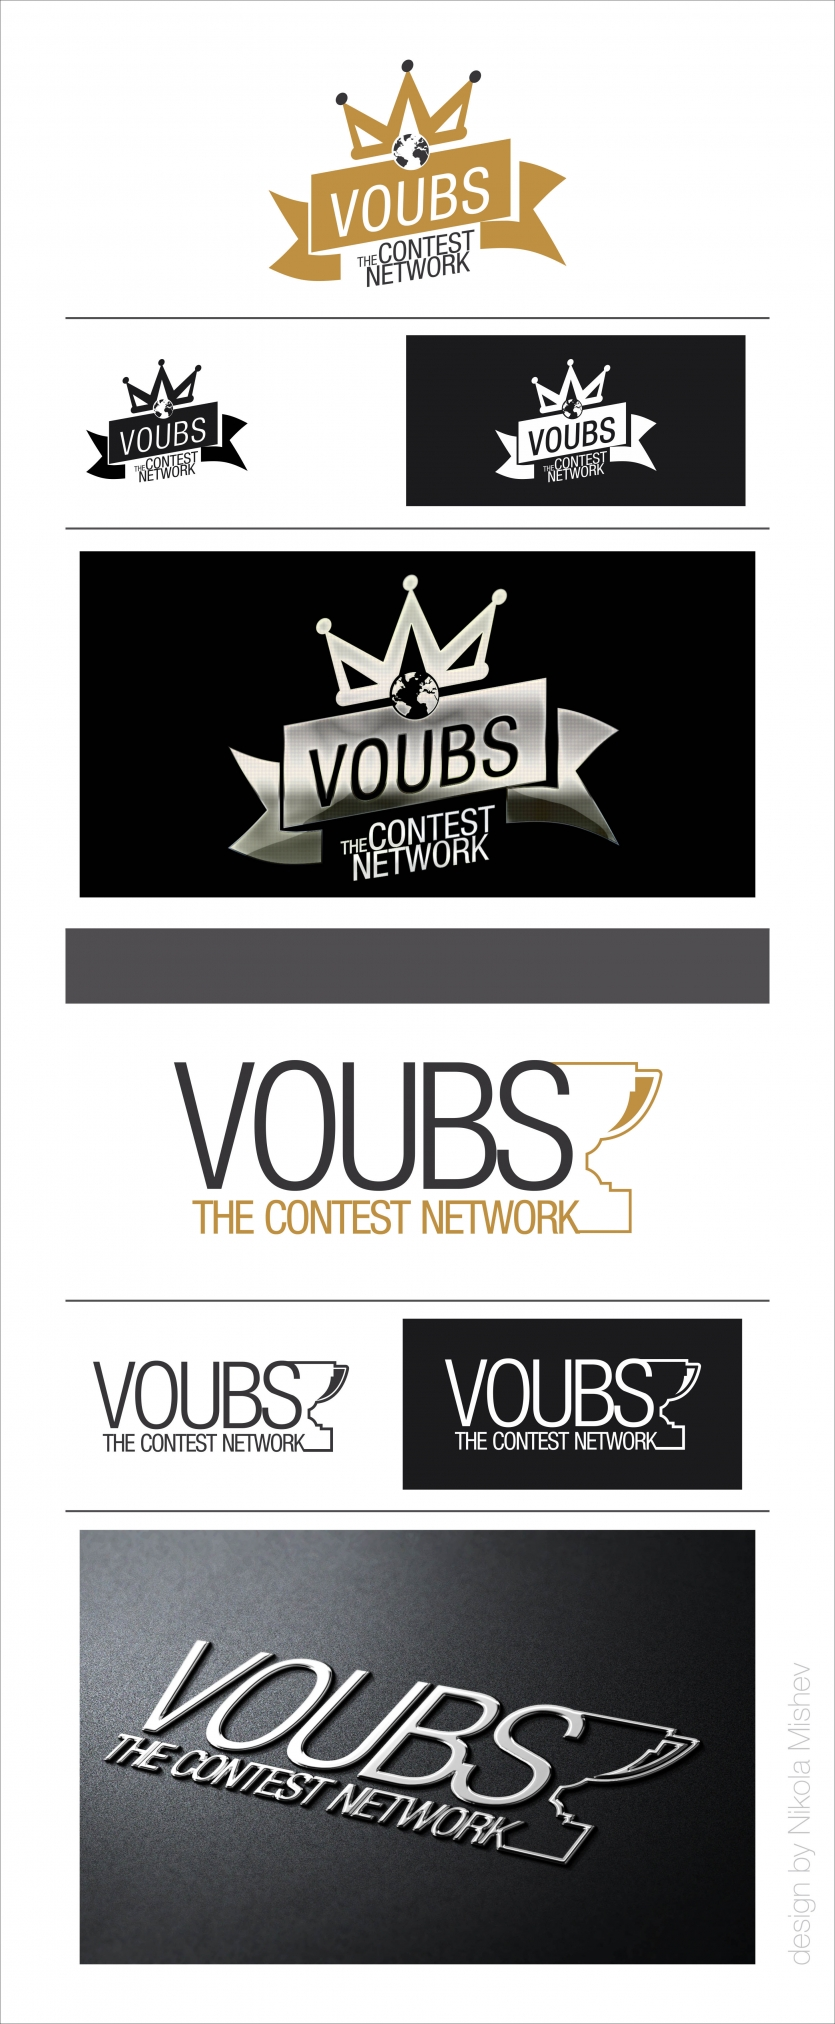 Voubs logo suggestion